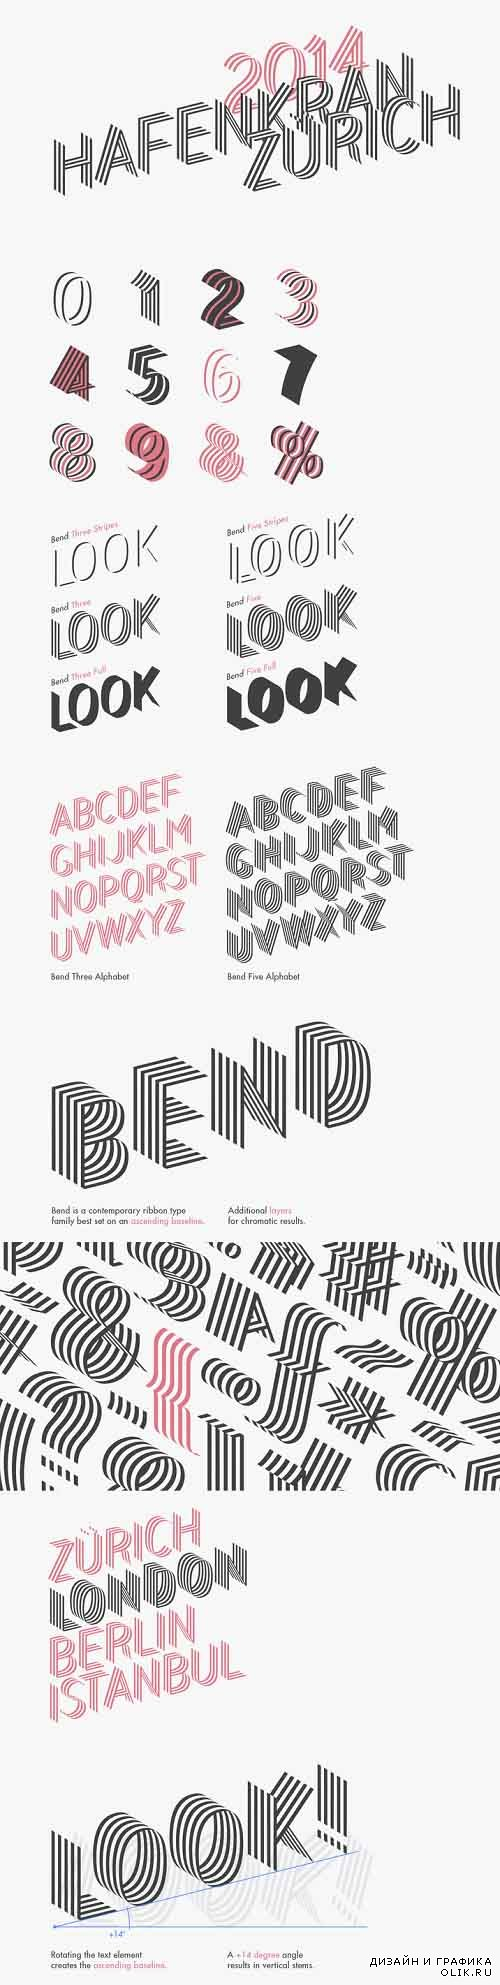 Bend Ad Font Style